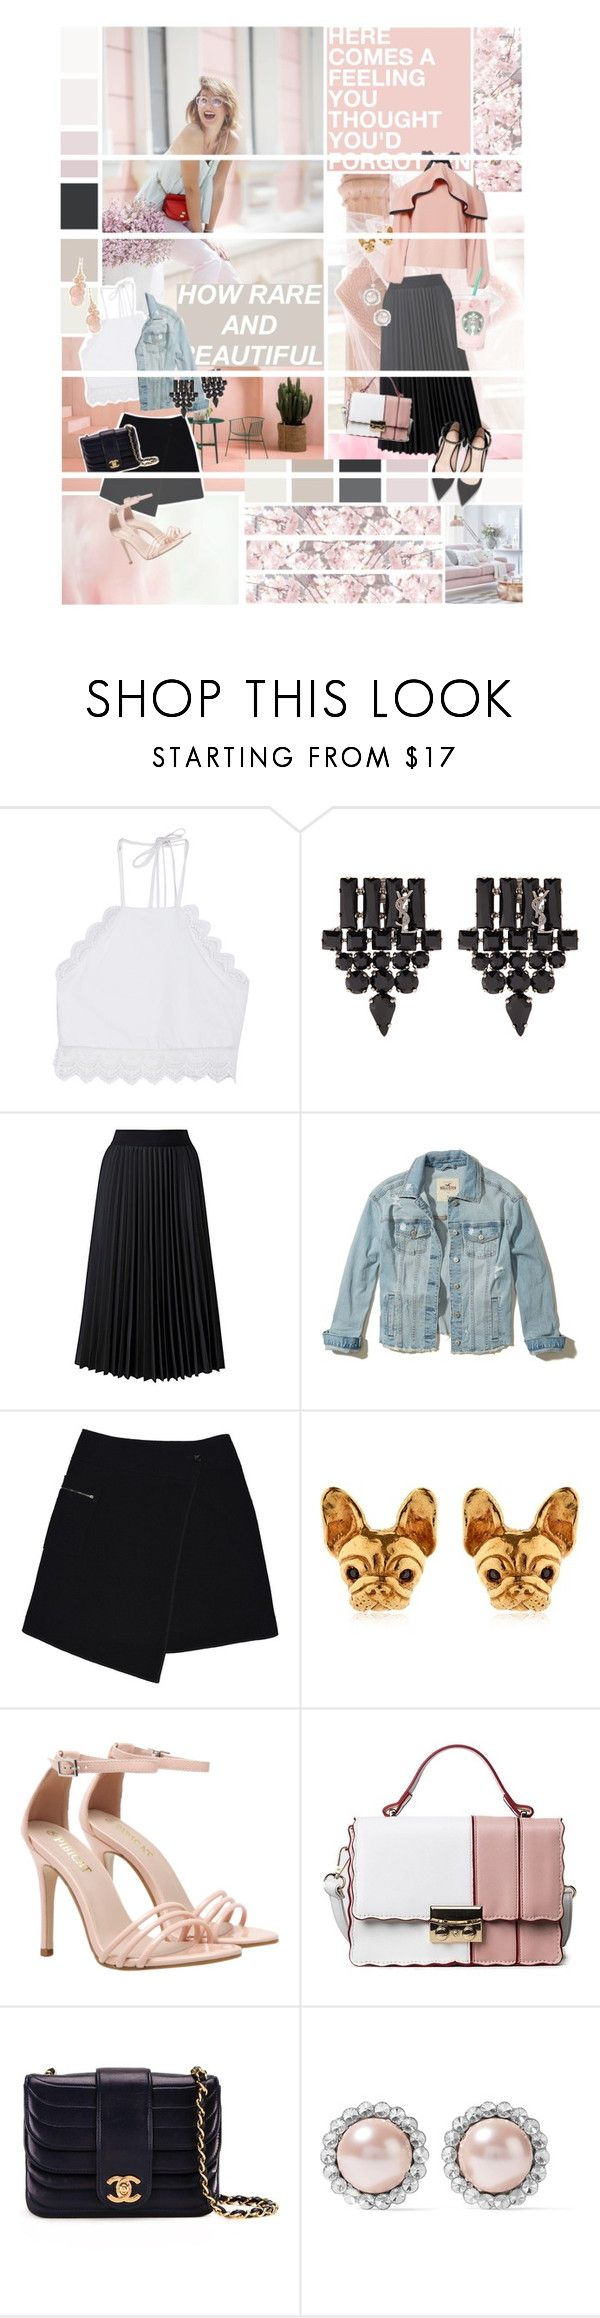 """""""Two is better than One"""" by chassidys ❤ liked on Polyvore featuring Front Row Shop, Yves Saint Laurent, Hollister Co., MARC CAIN, Intermix, Chanel, Miu Miu and Avon"""